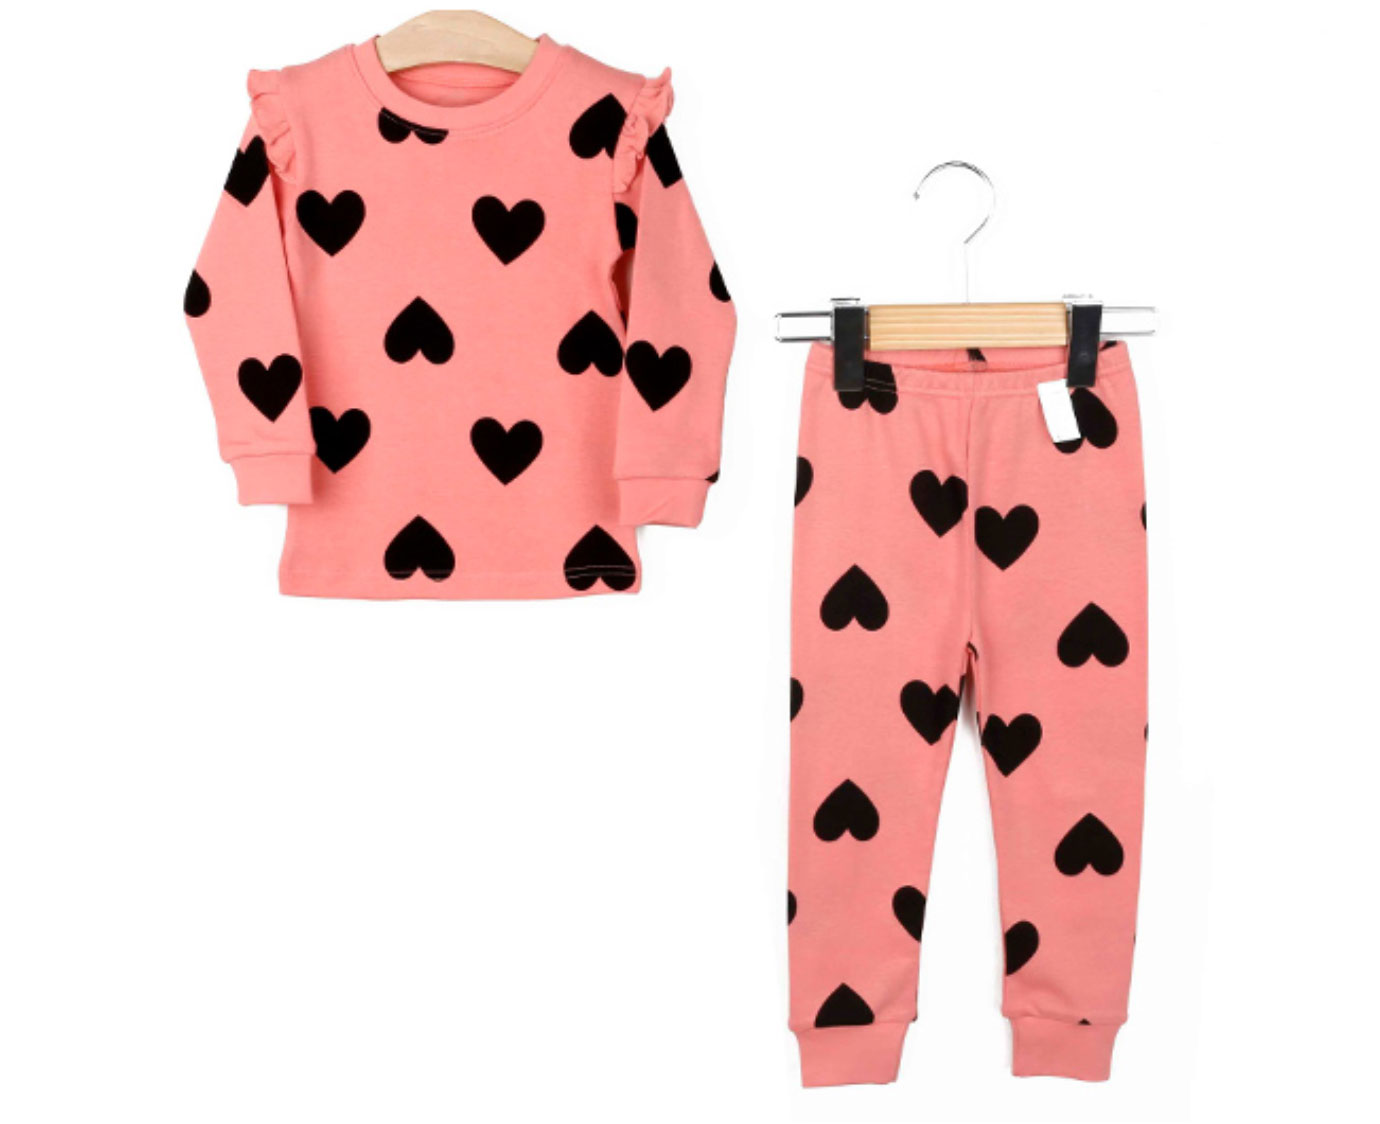 Pyjama 'Heart love' Maat 86-92